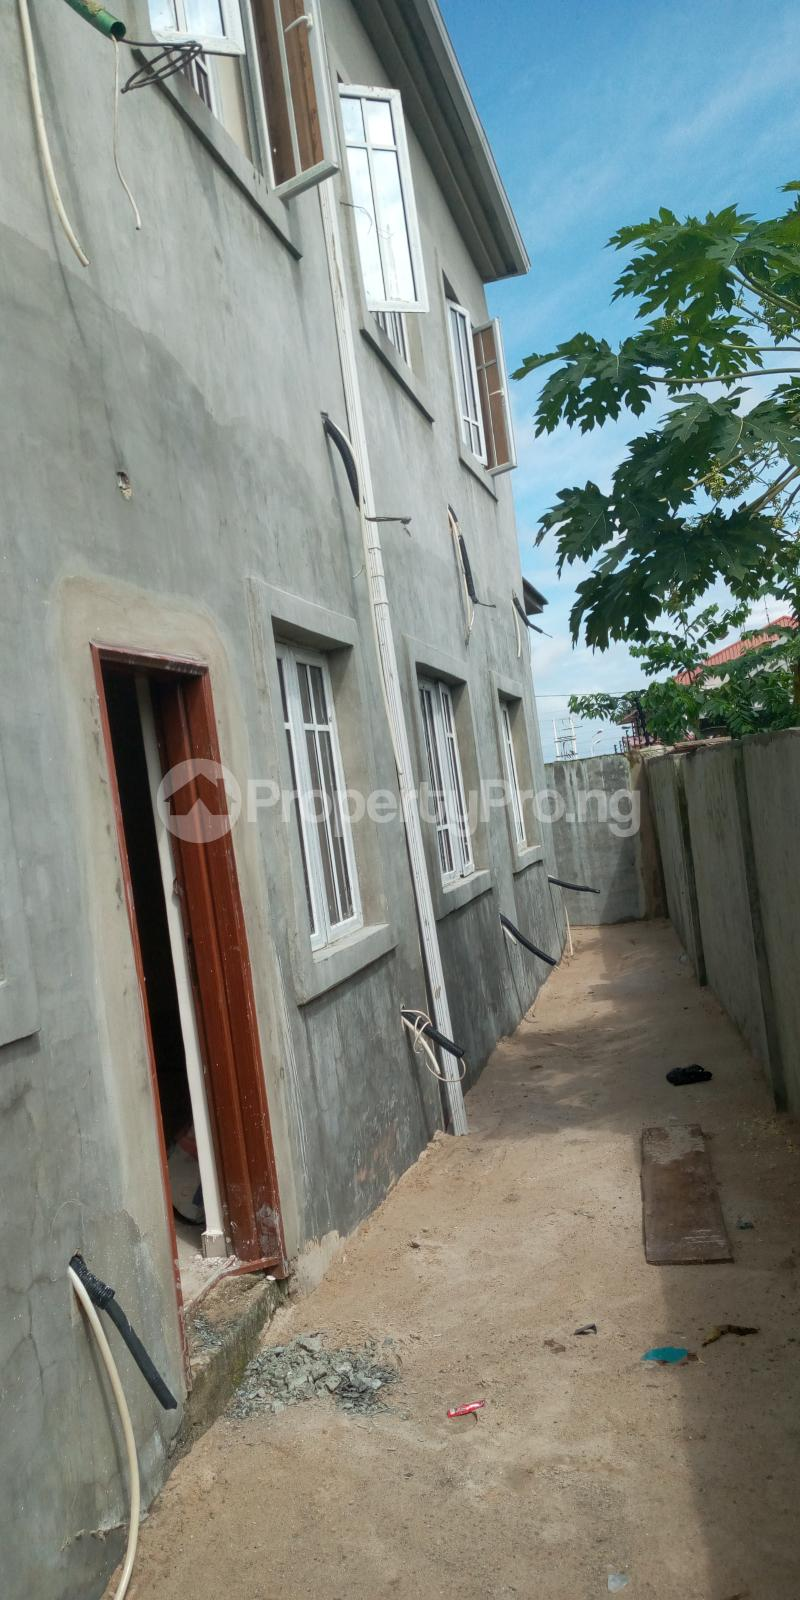 School Commercial Property for sale Eputu Ibeju-Lekki Lagos - 4